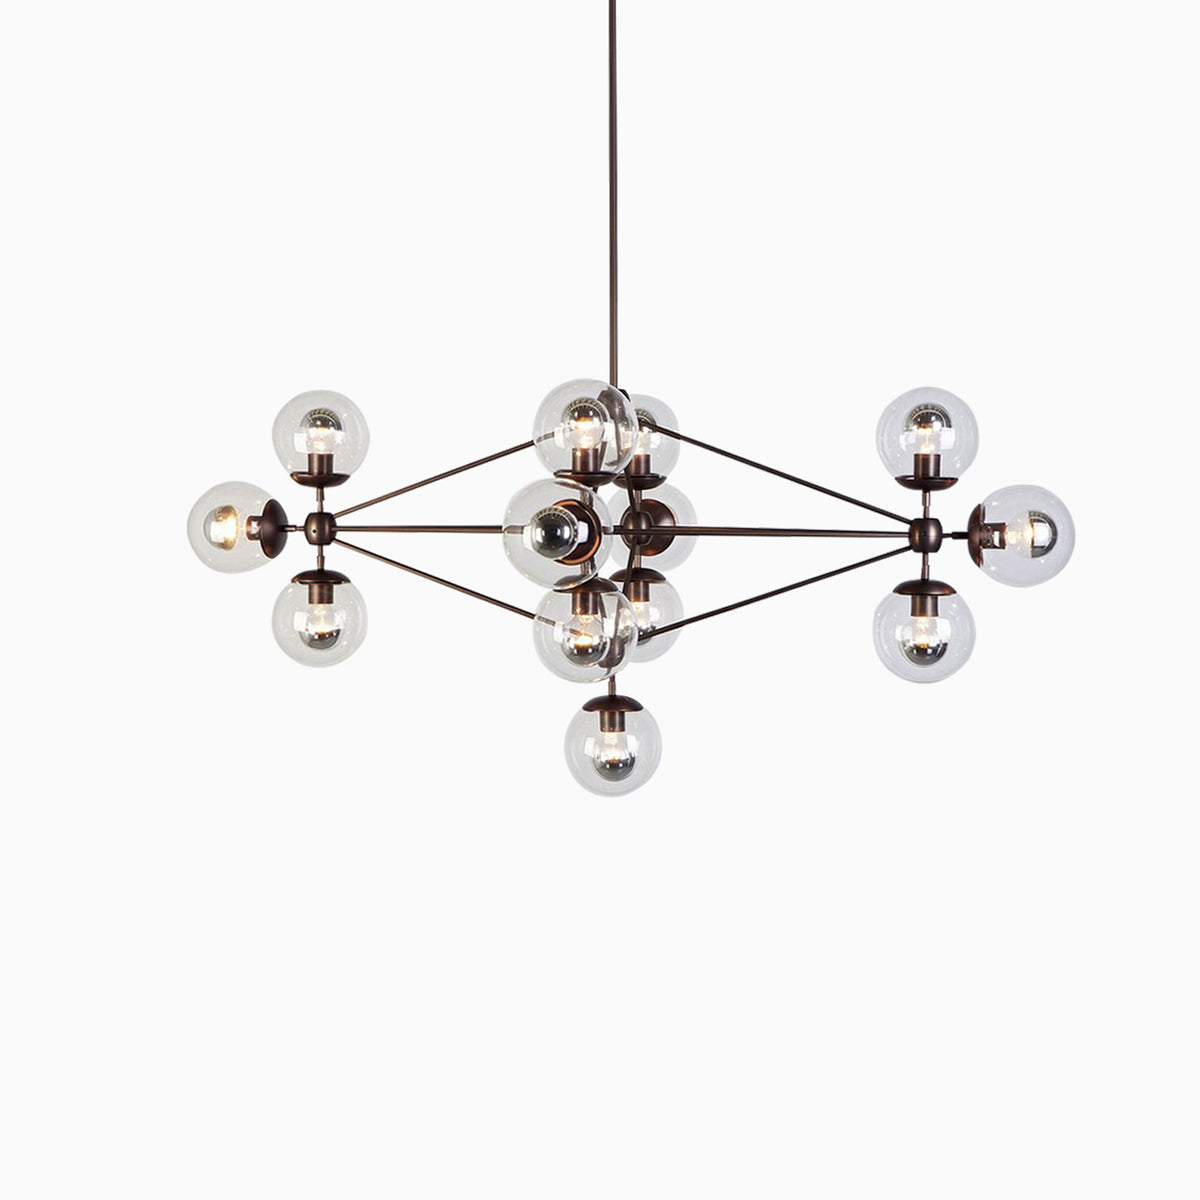 14 Blob Chandeliers - objects of interest